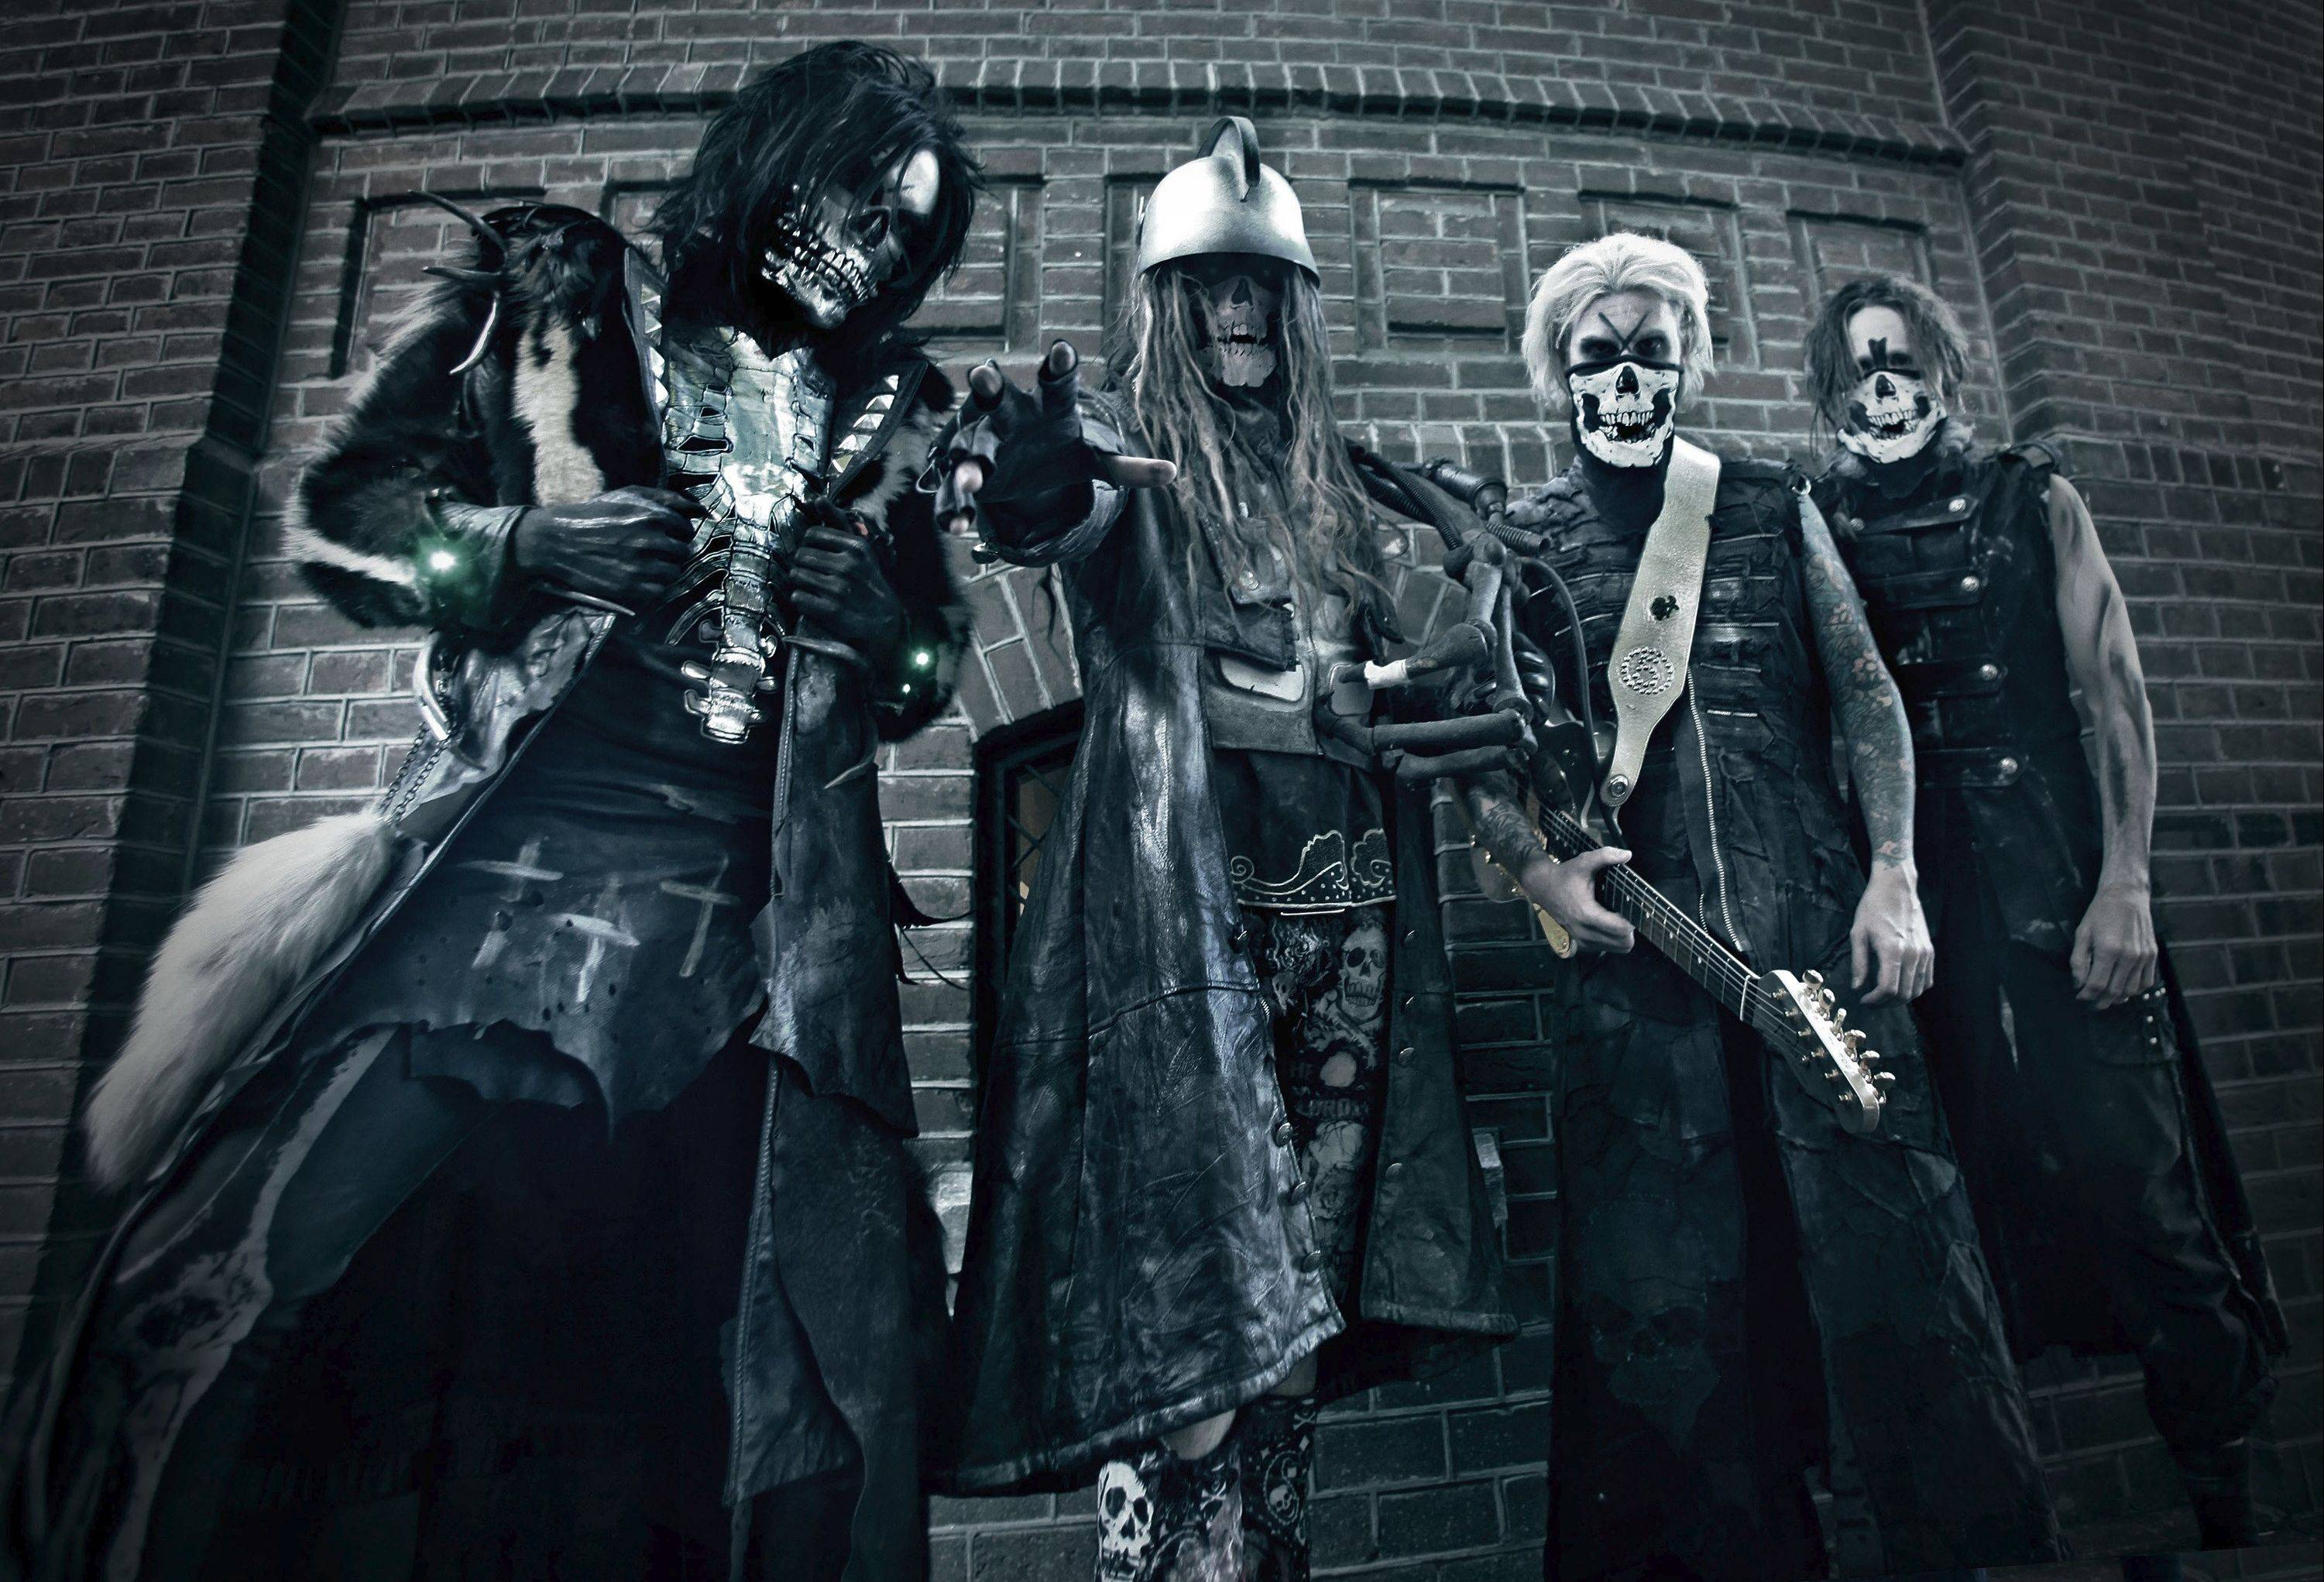 Rob Zombie will be a co-headliner alongside Marilyn Manson on Thursday, Oct. 11, when the Twins of Evil Tour stops at the Allstate Arena in Rosemont. Pictured, from left, are band members Piggy D, Zombie, John5 and Ginger Fish.